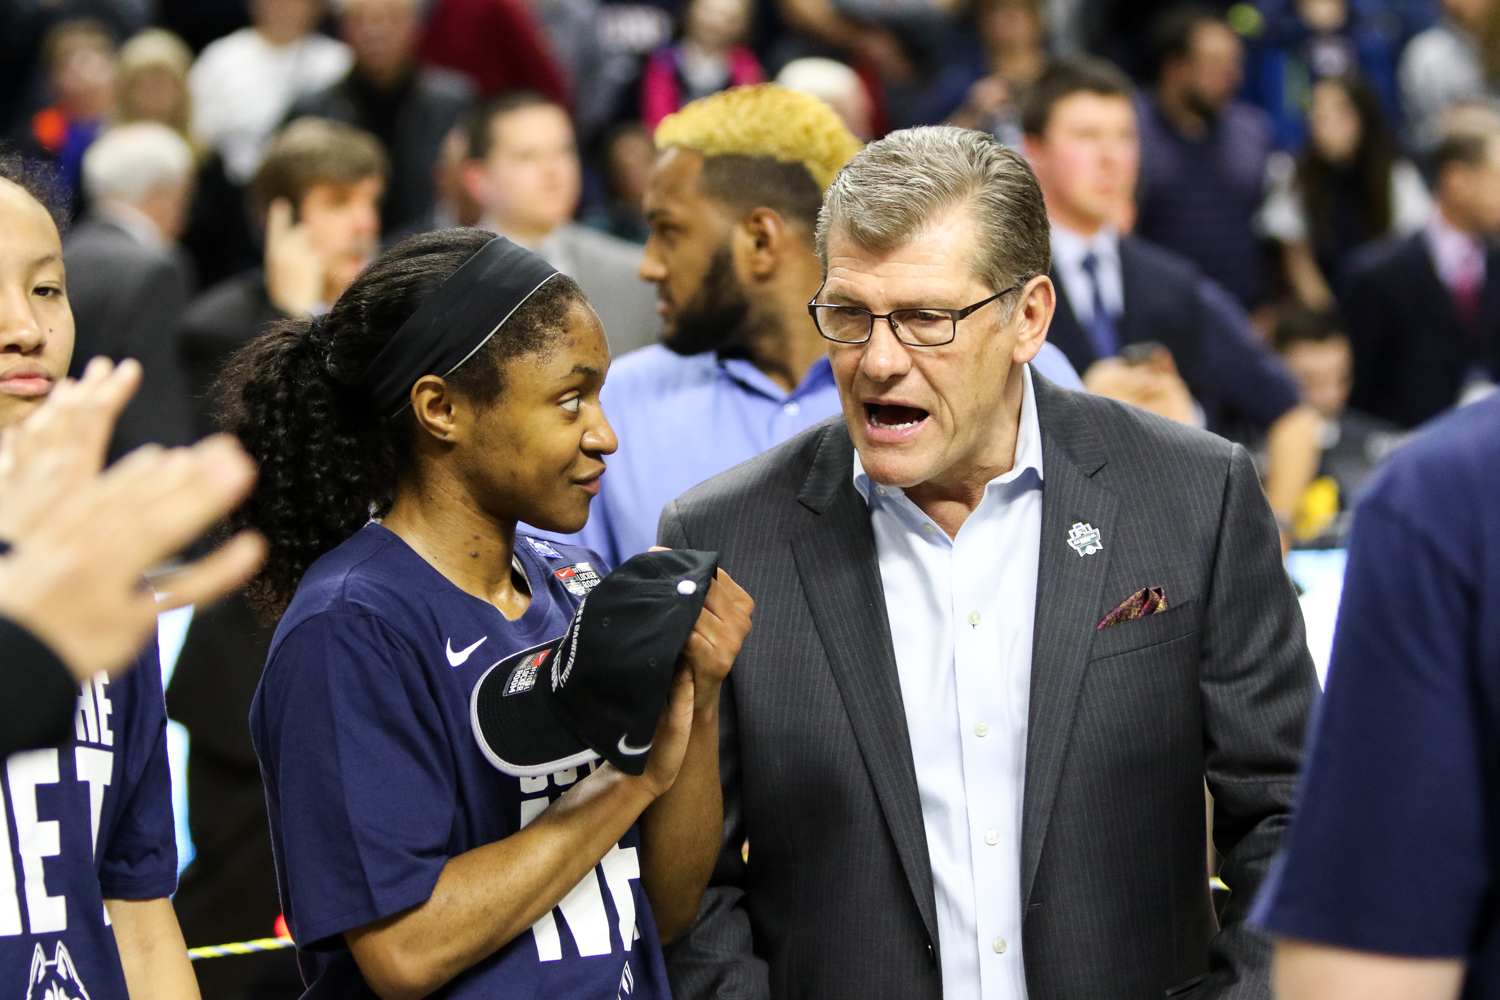 UConn freshman Crystal Dangerfield and head coach Geno Auriemma chat during the postgame celebration.